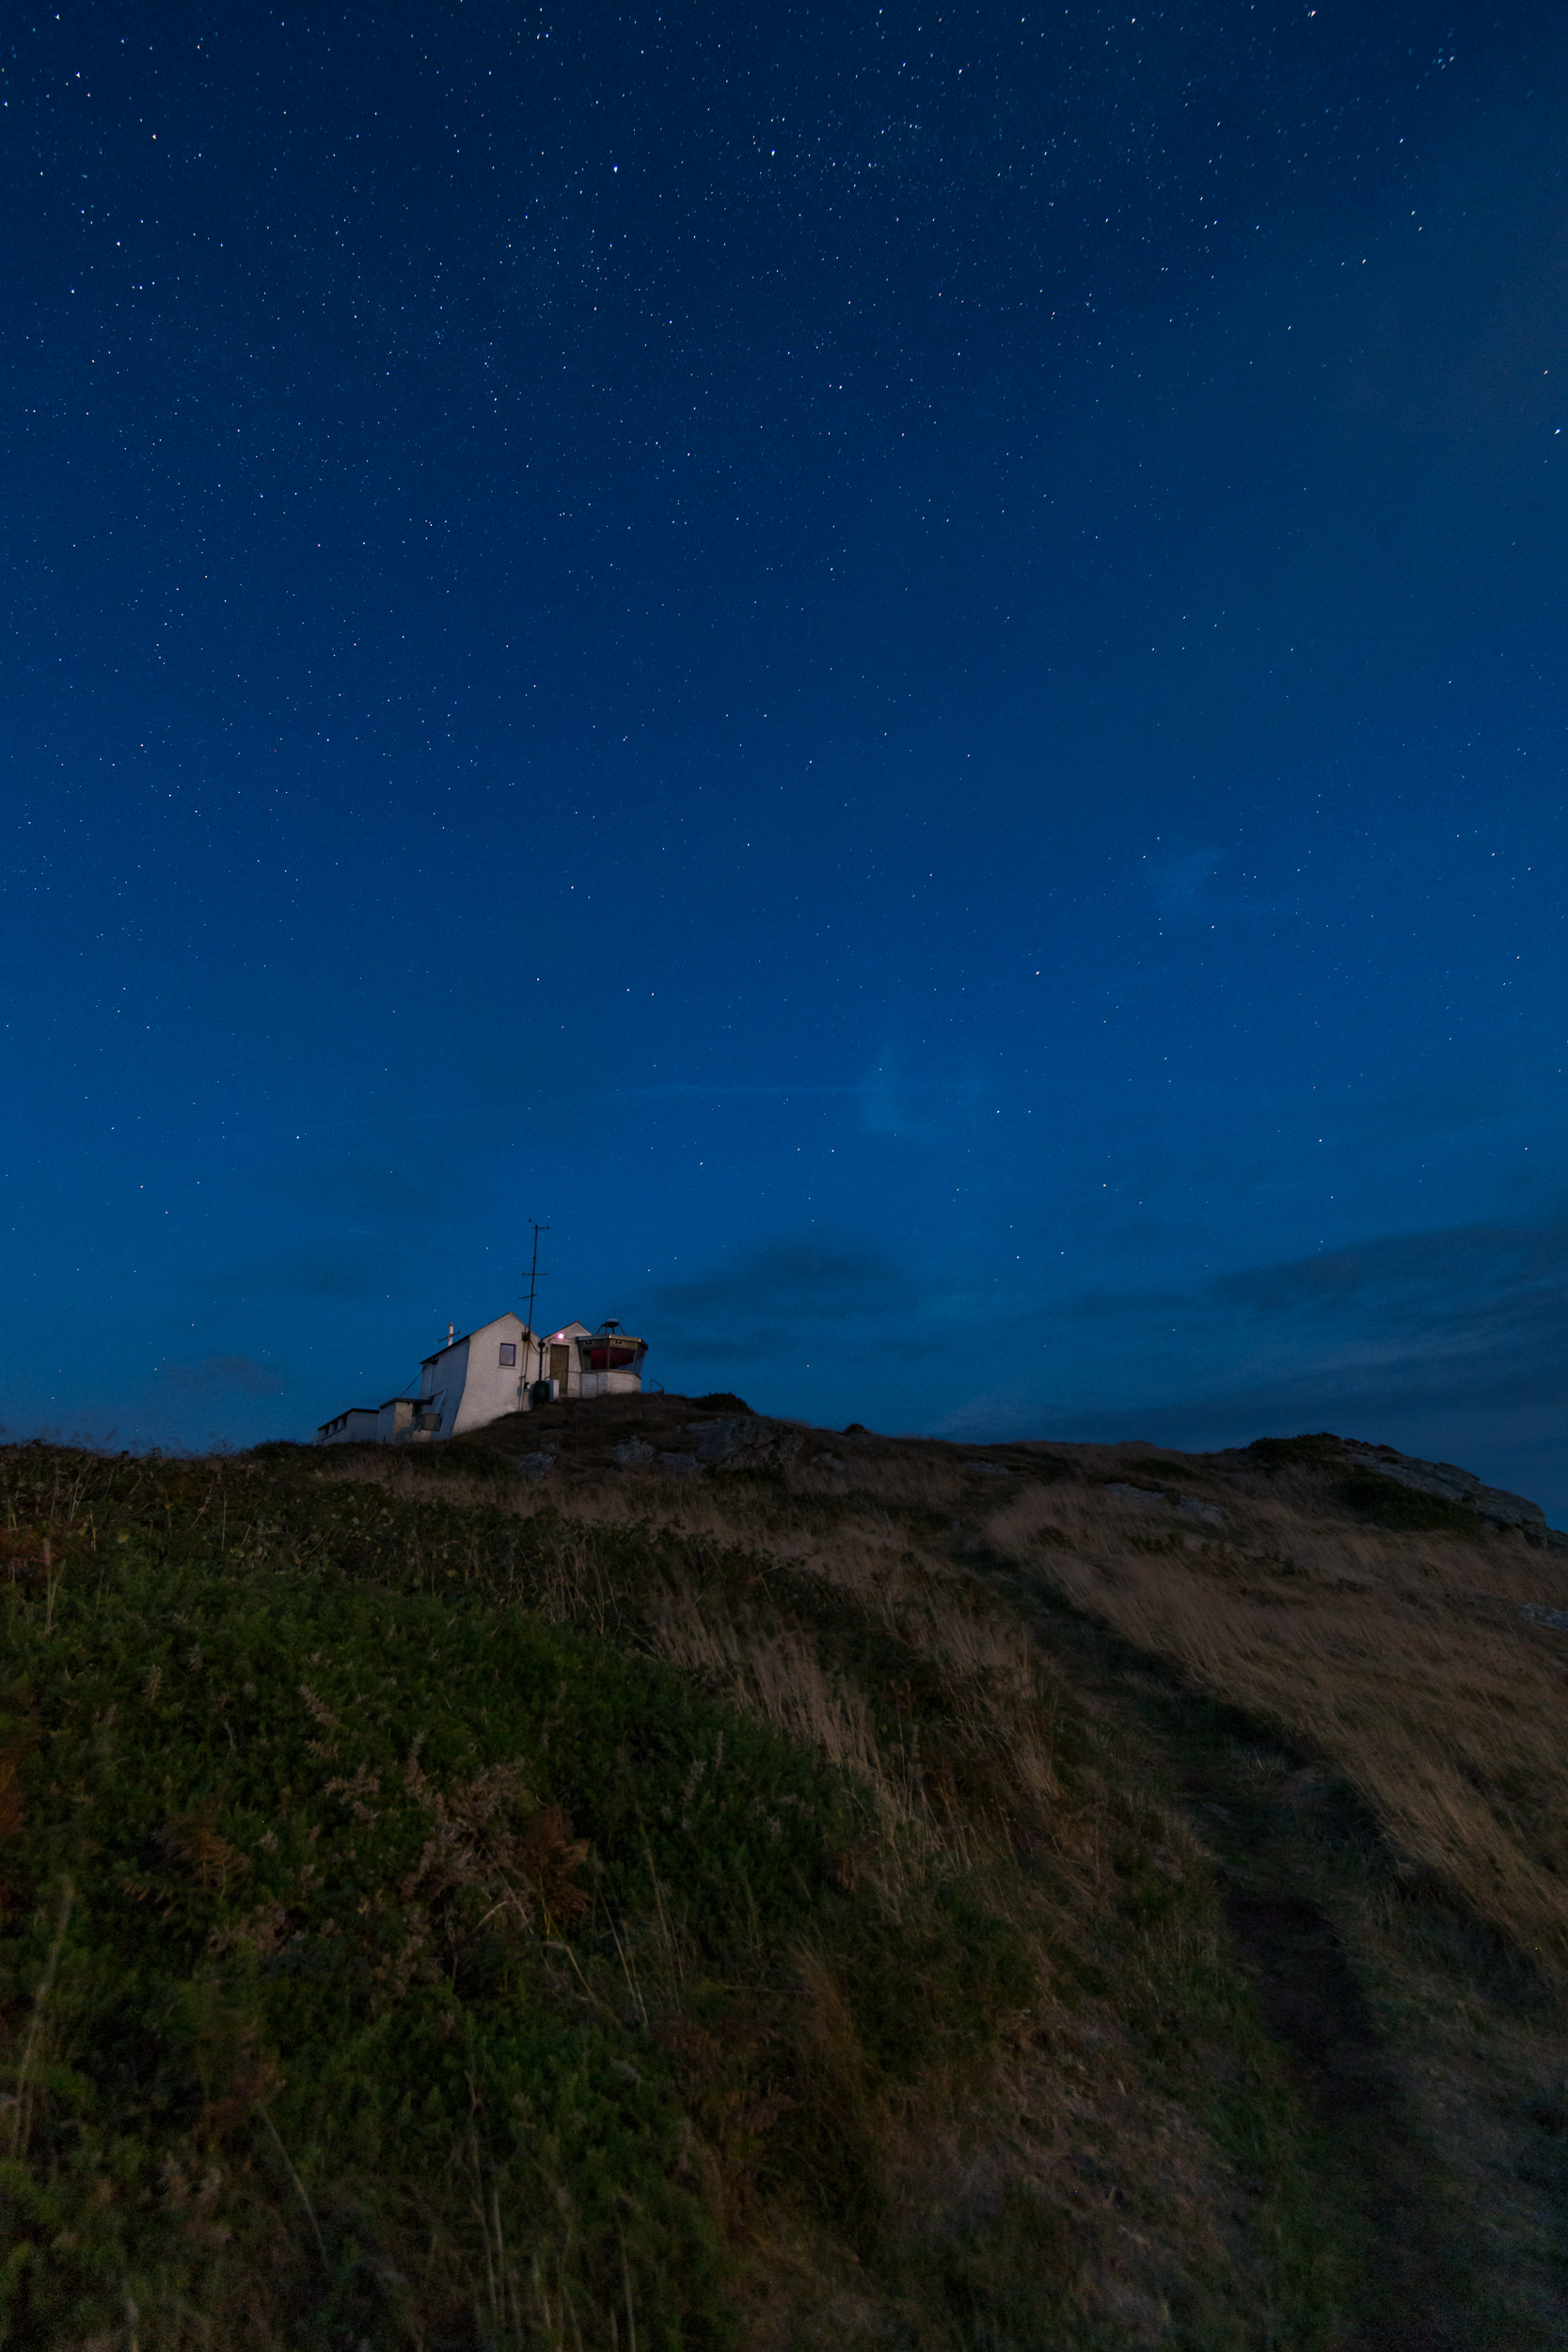 A Stary Night at Prawle Point Coastguard Lookout, Devon  - Nikon D850, Nikkor 16-35 mm f/4 at 16 mm, 15 seconds at ISO 1600, f/14.